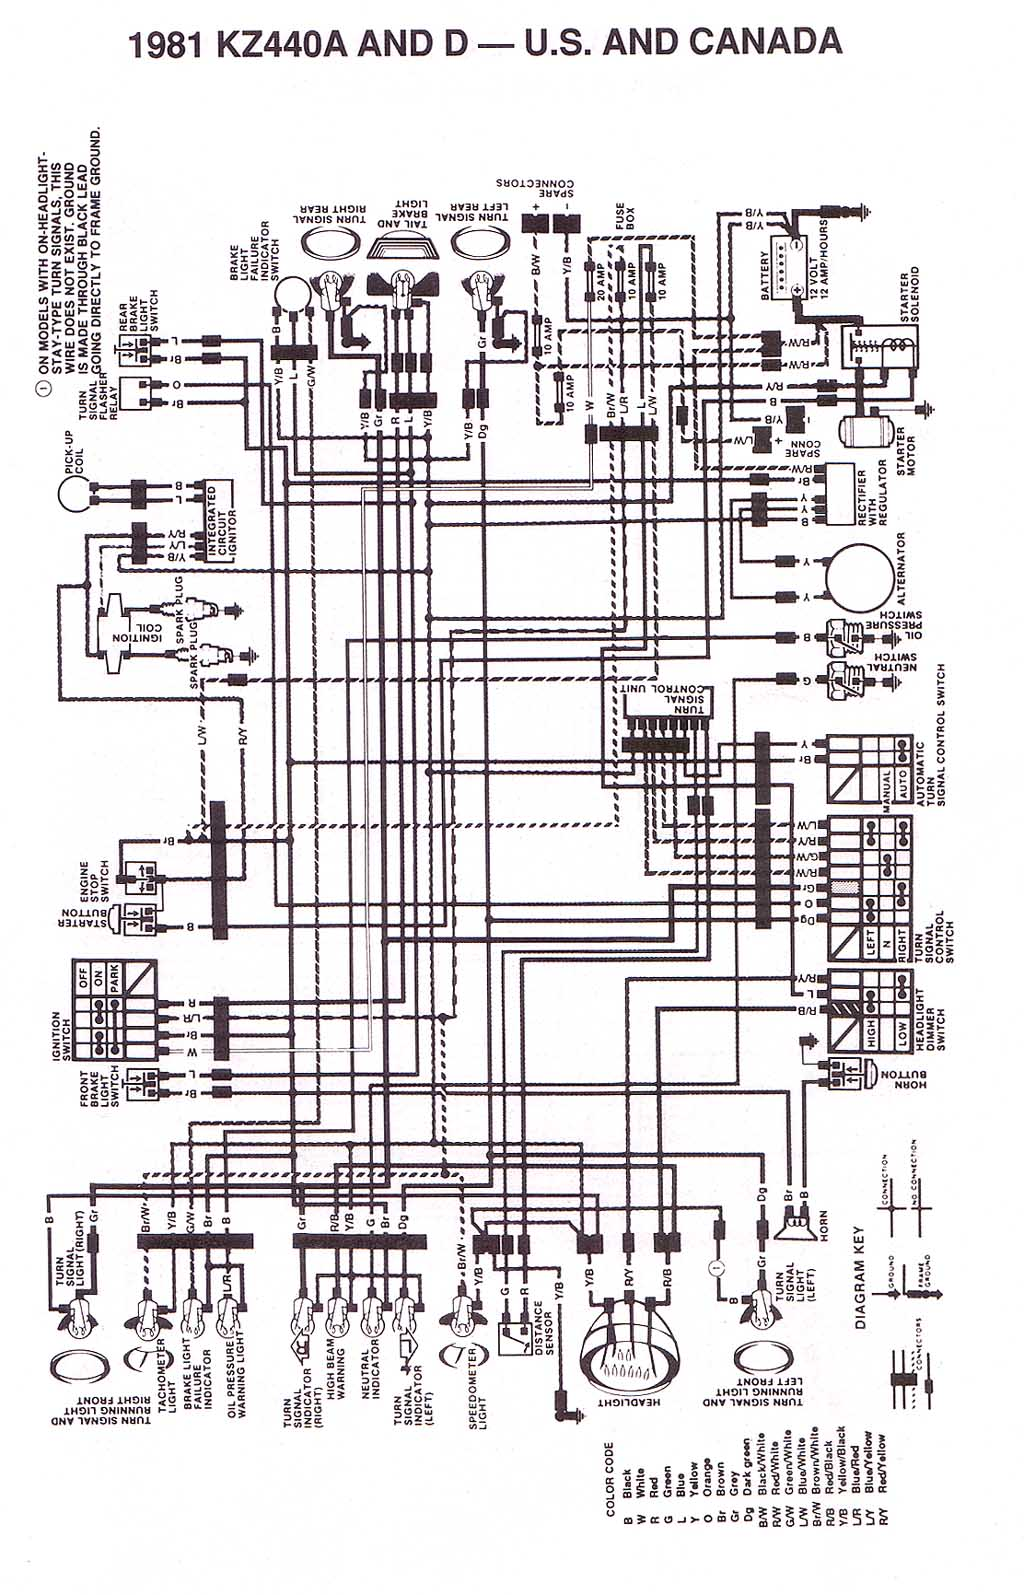 KZ440A and D wiring diagram %28US%29 1981 kawasaki ltd 440 rebuild thread page 5 barf bay area 1980 kawasaki 440 ltd wiring diagram at bakdesigns.co